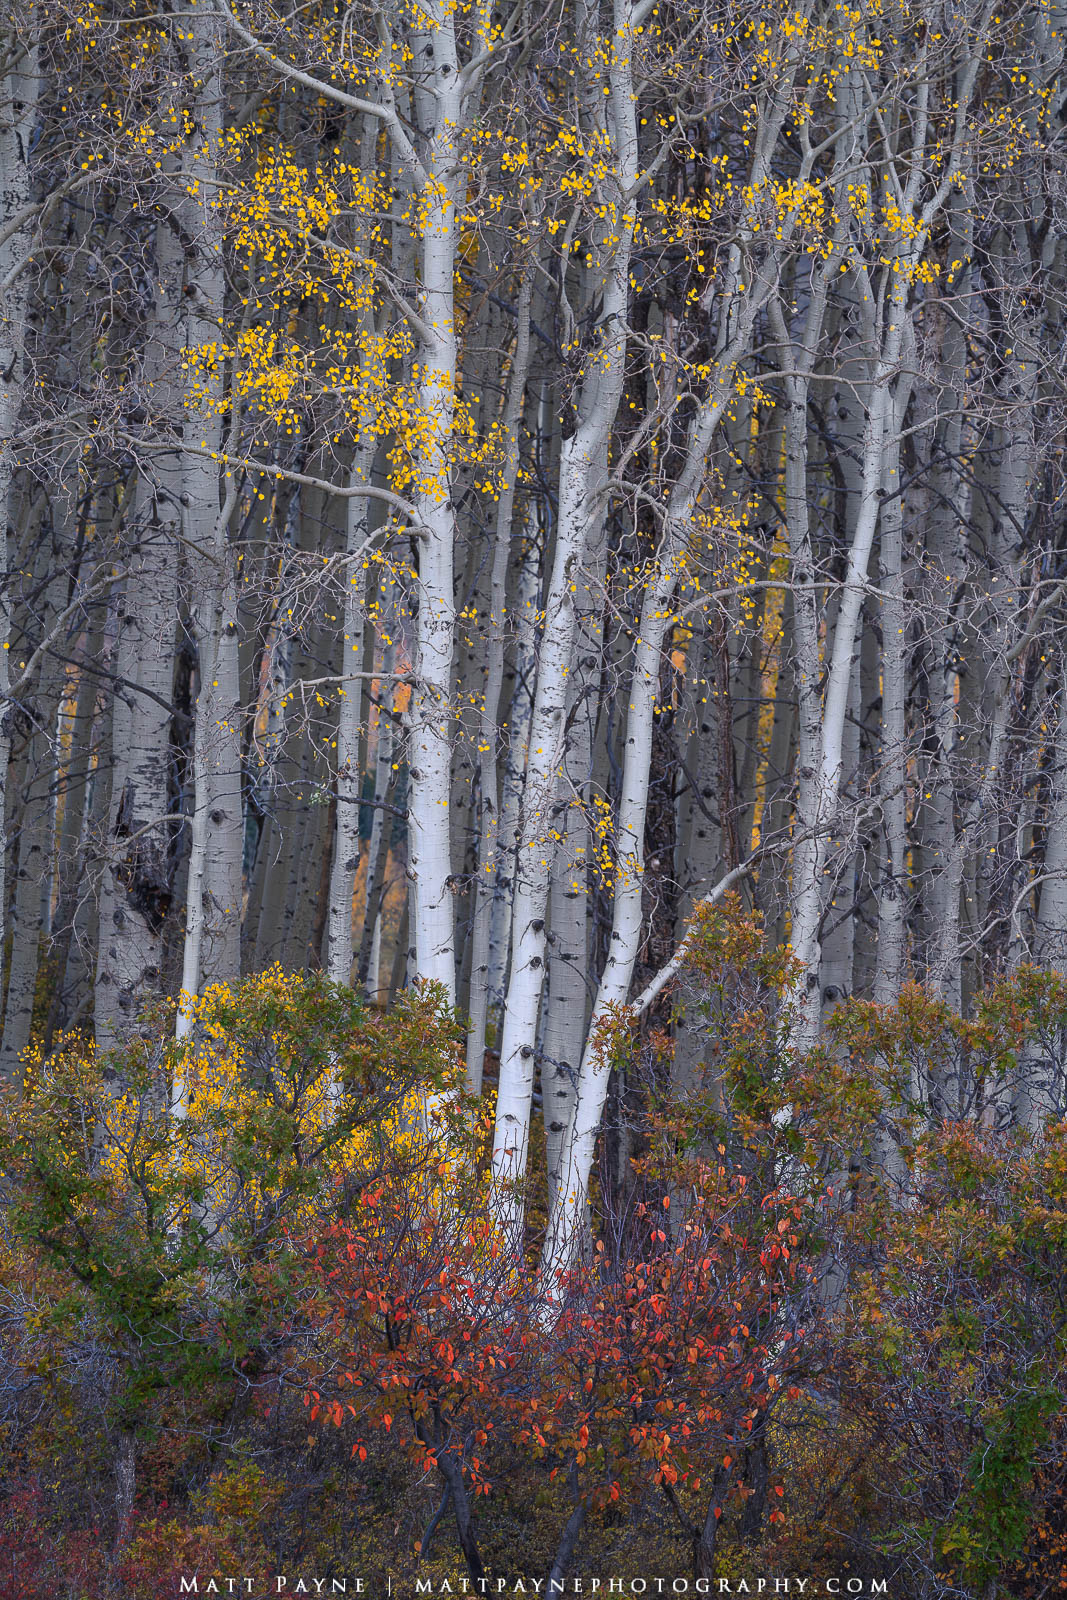 I was really happy to find this composition which included aspen trees, scrub oak, and the white bark of the aspen trees with...